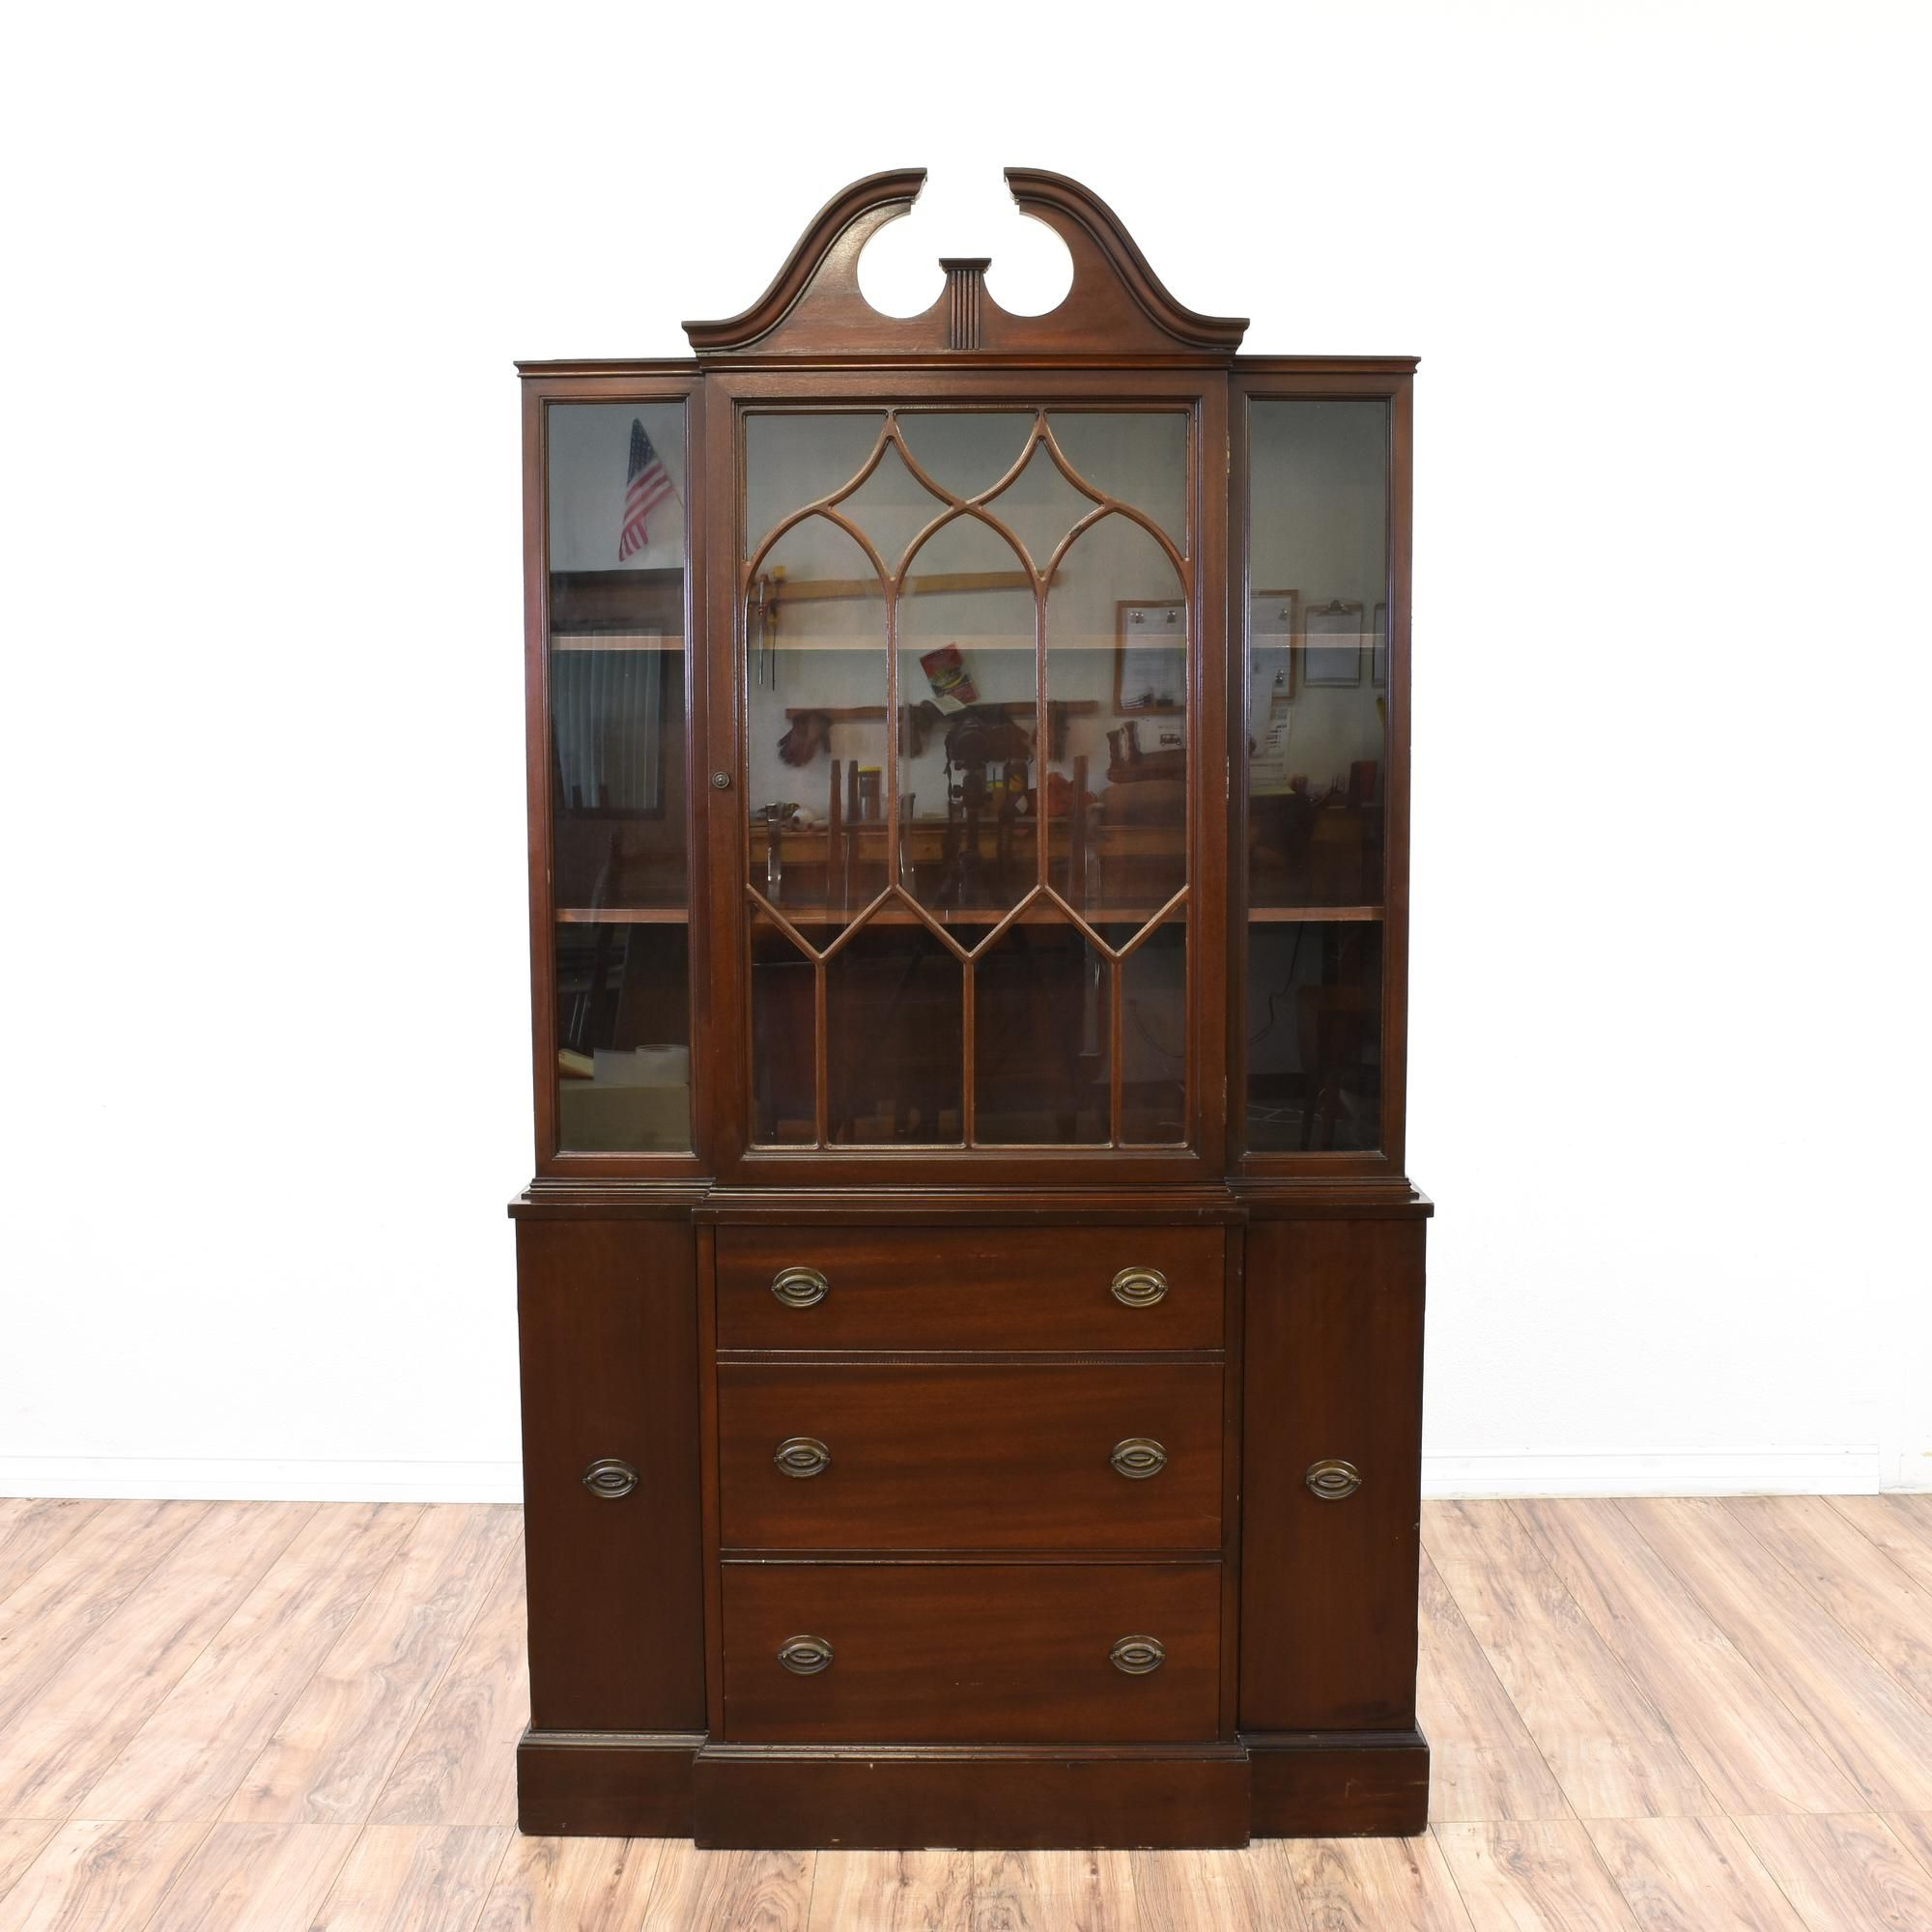 This chippendale china cabinet is featured in a solid wood with a